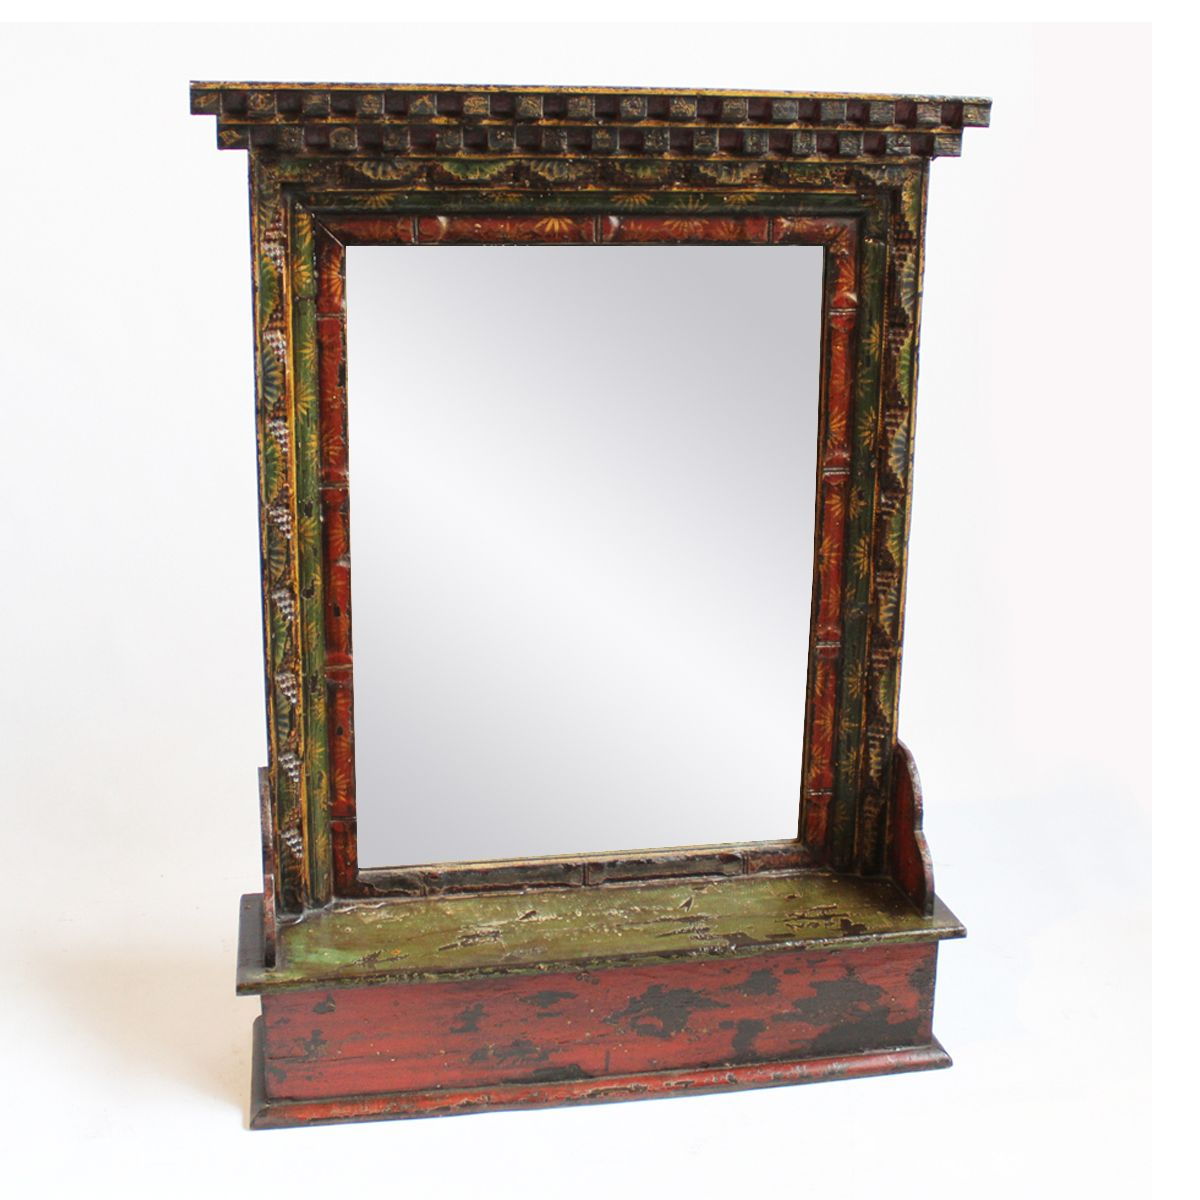 Tibet Carved wood Painted mirror frame.  Free standing or wall mount mirror frame with carved wood border and painted detail.